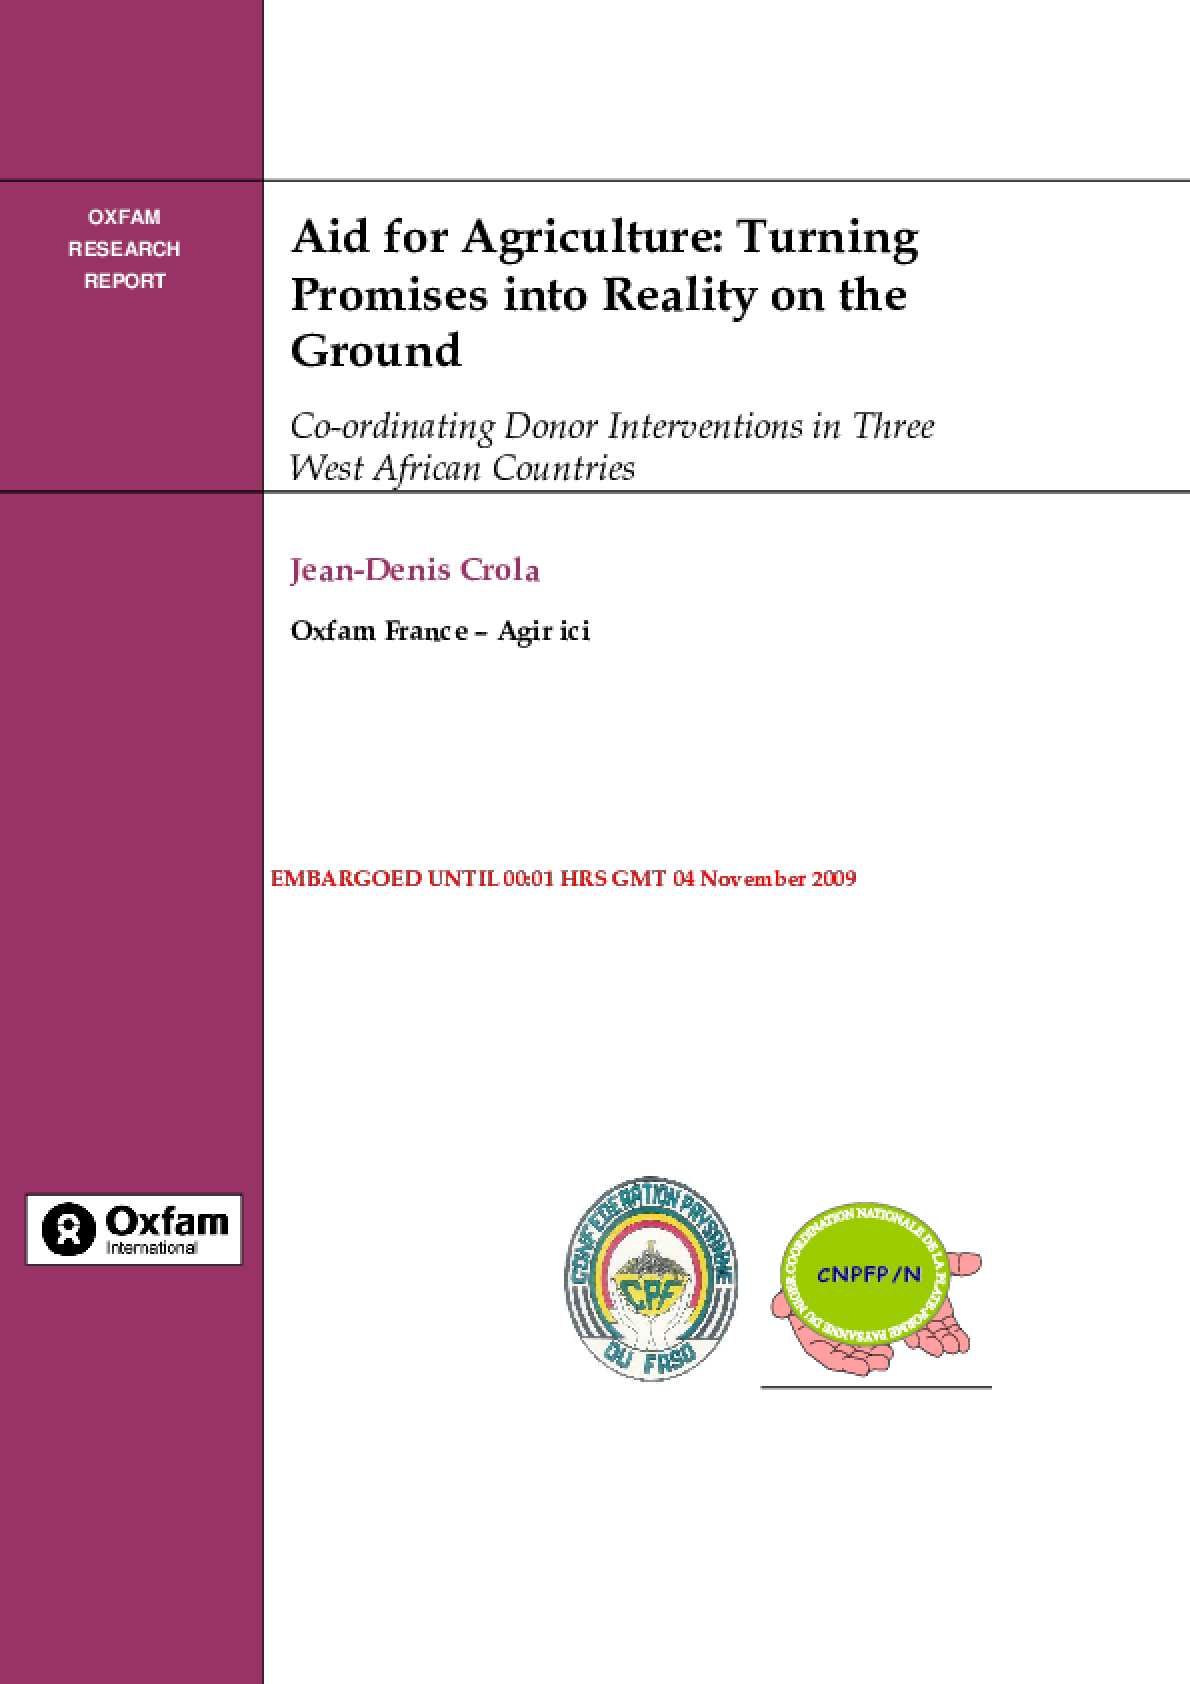 Aid For Agriculture: Turning promises into reality co-ordinating donor interventions in three west African countries